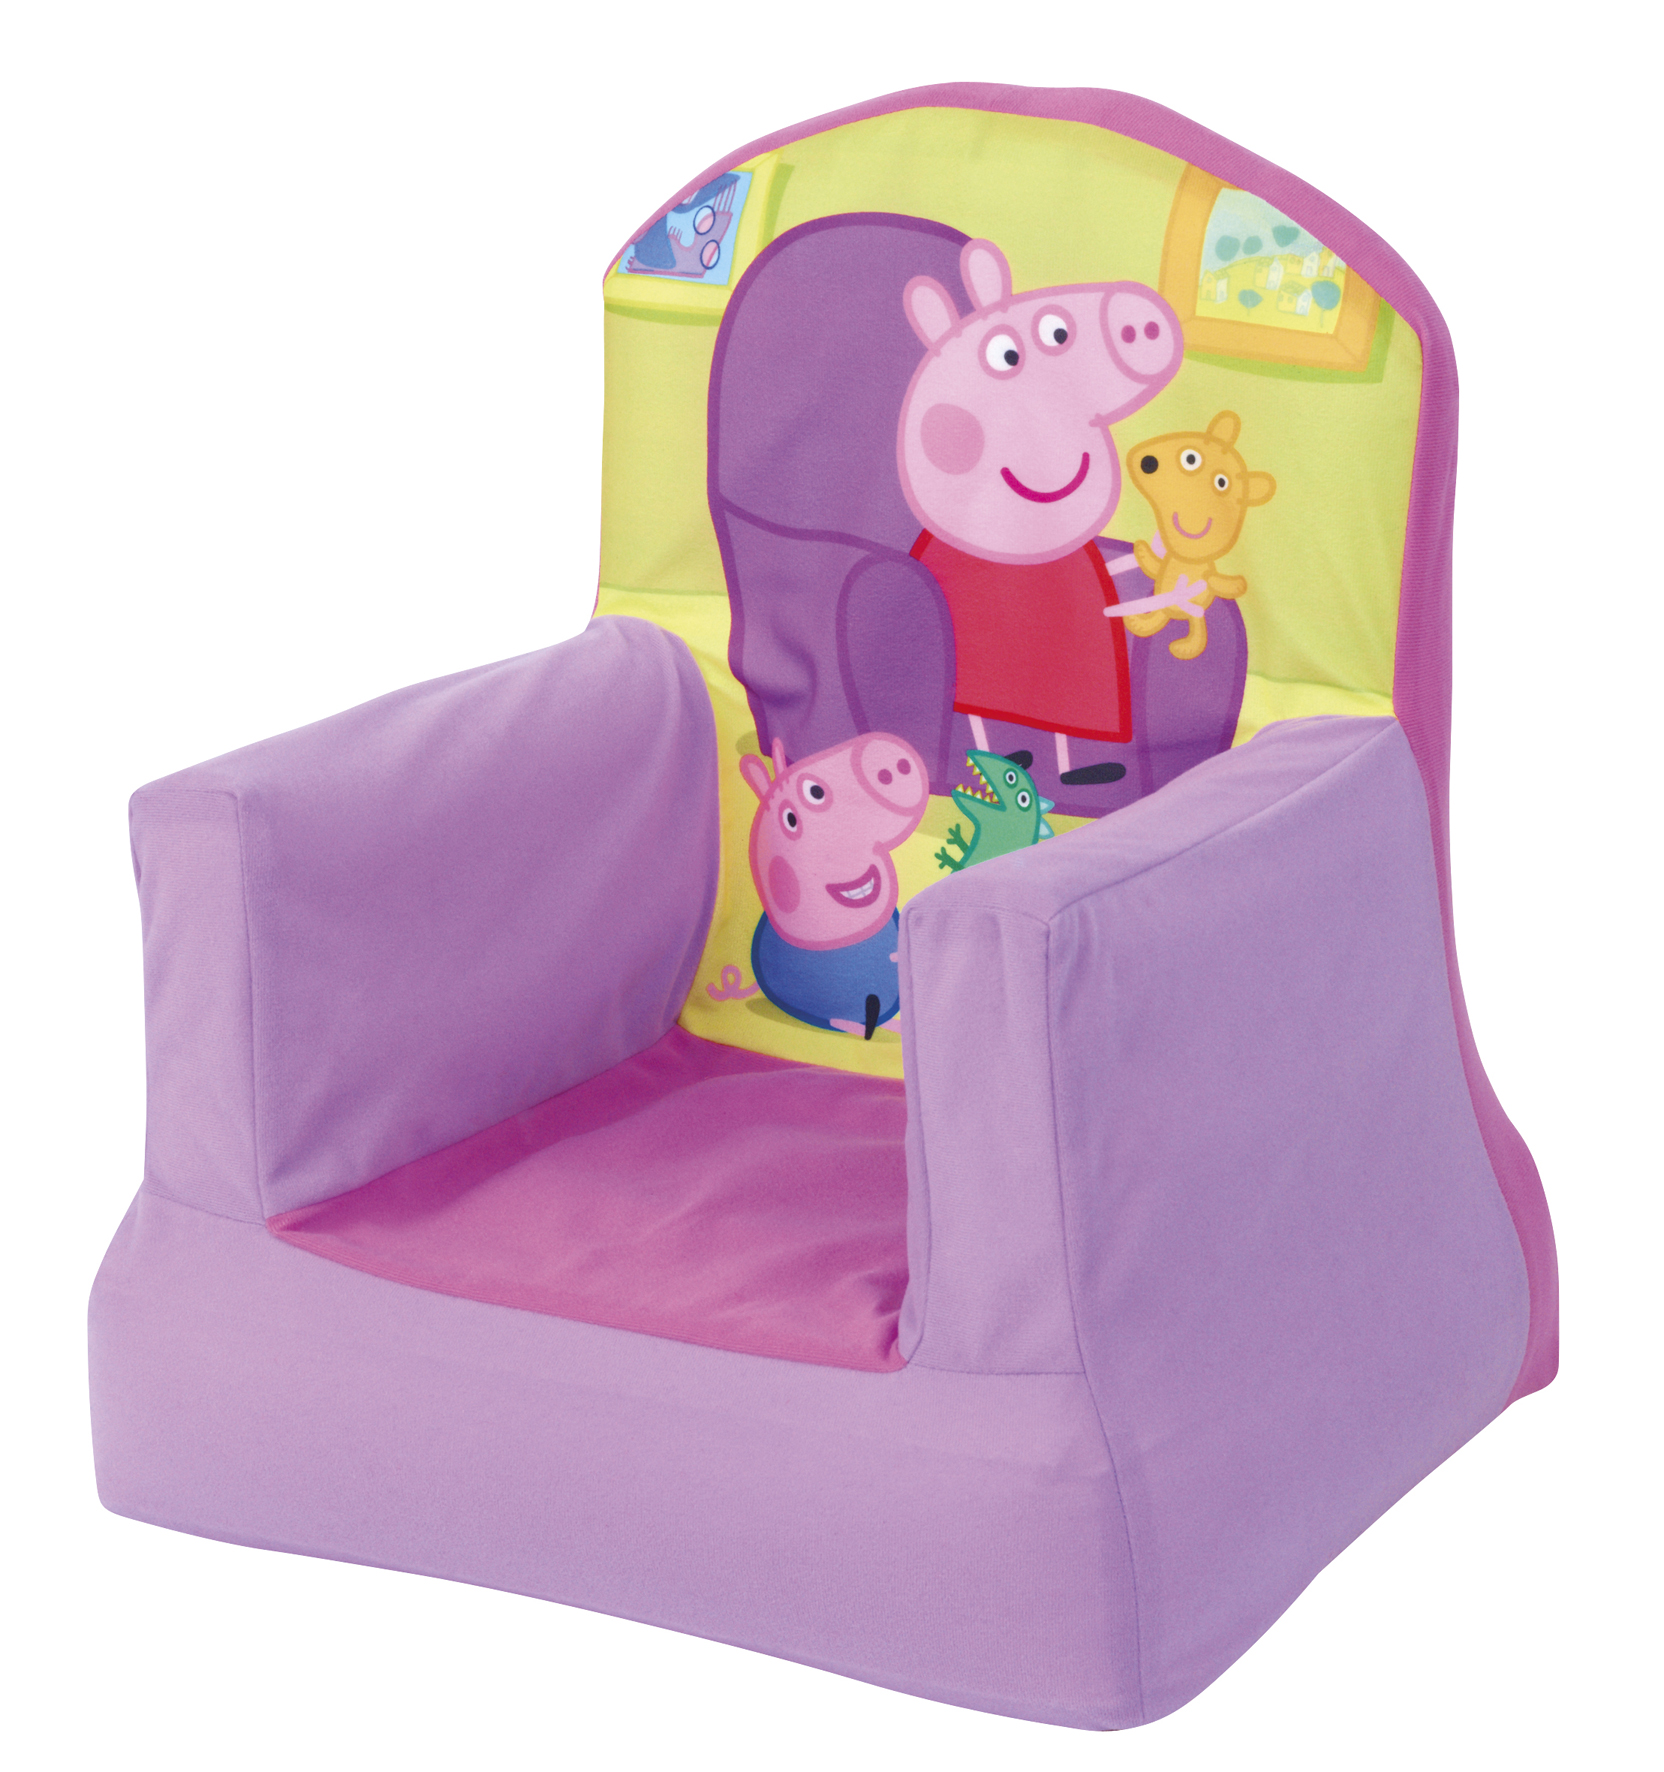 Inflatable Childrens Chair